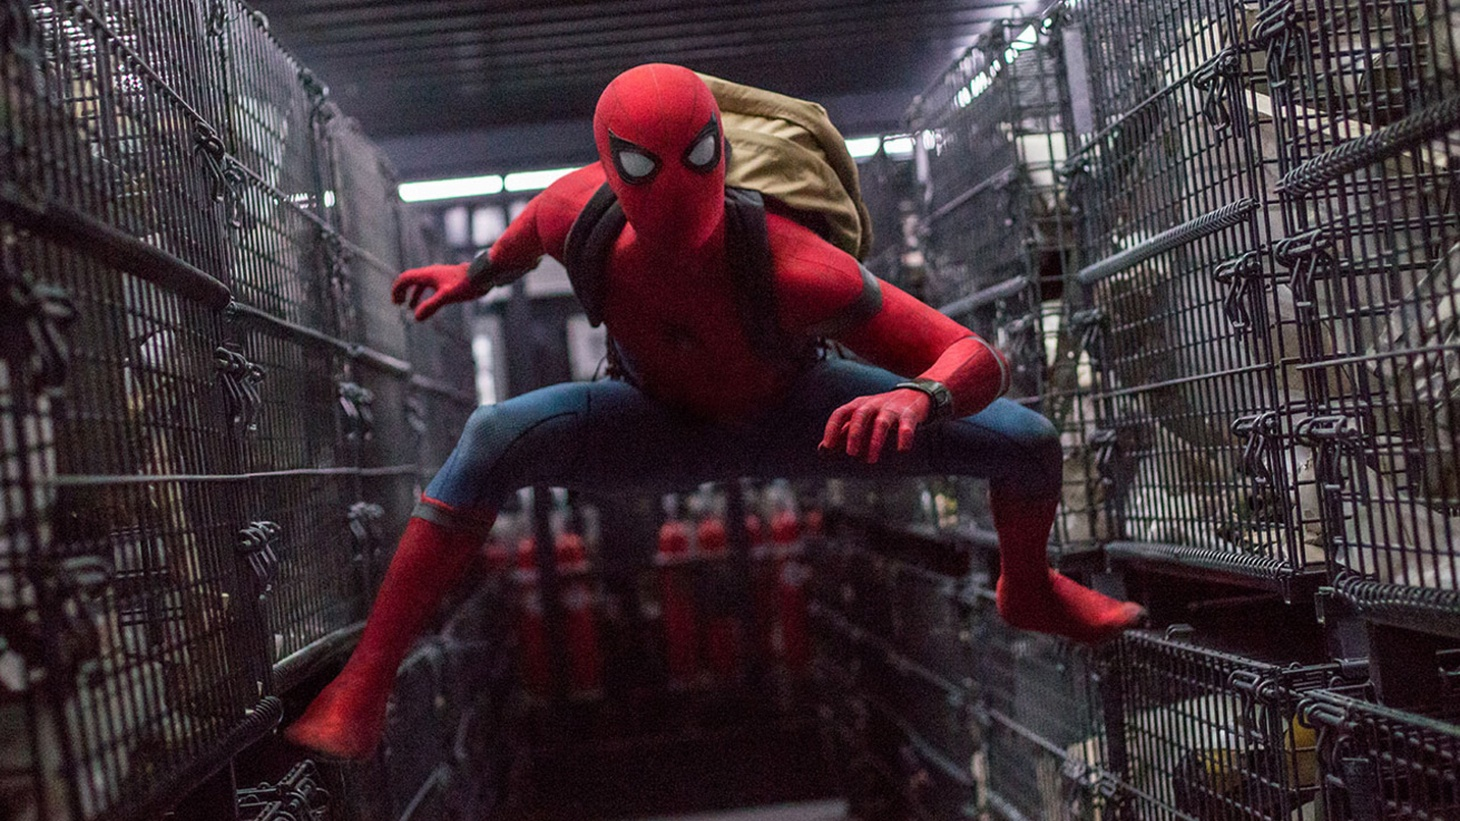 Spider-Man: Homecoming is delightfully smart, genially aware of itself and terrifically likeable. Only now is this series coming of age.